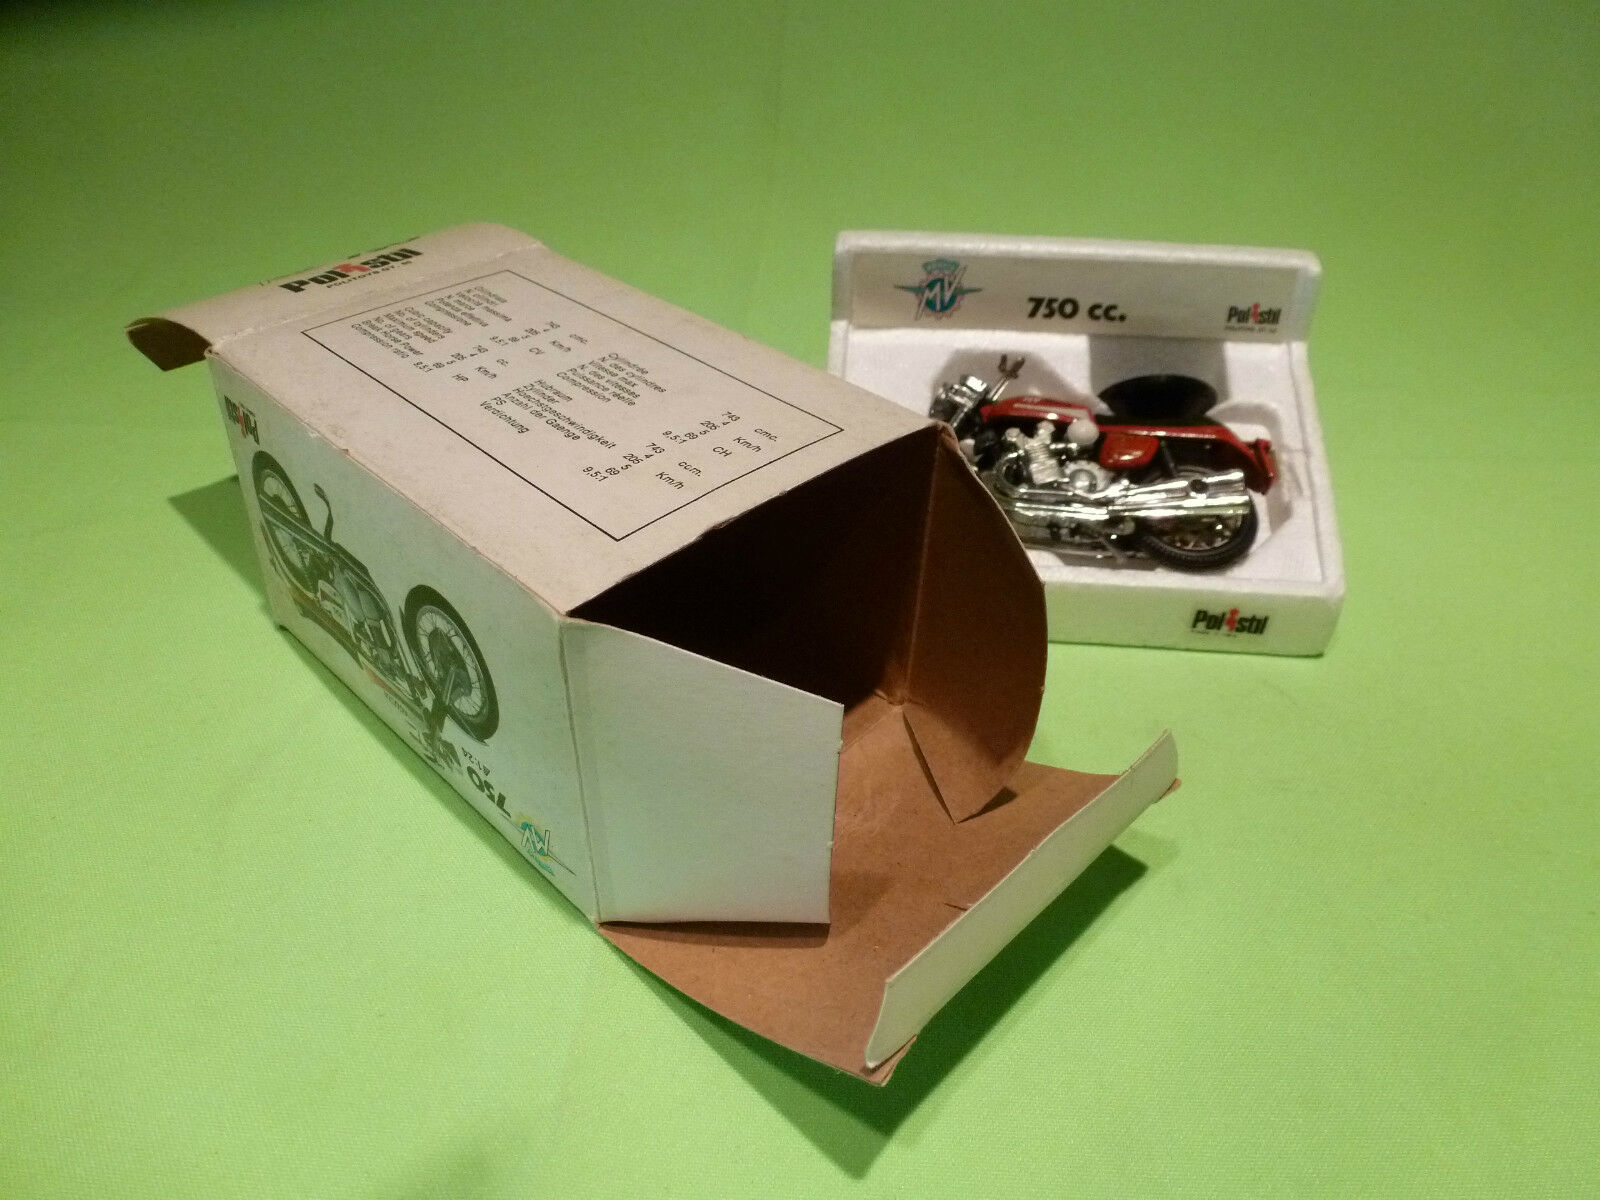 POLISTIL POLISTIL POLISTIL POLITOYS GT 55 MV AUGUSTA  750 - 1 24  - VERY GOOD CONDITION - IN BOX 7b7c3f